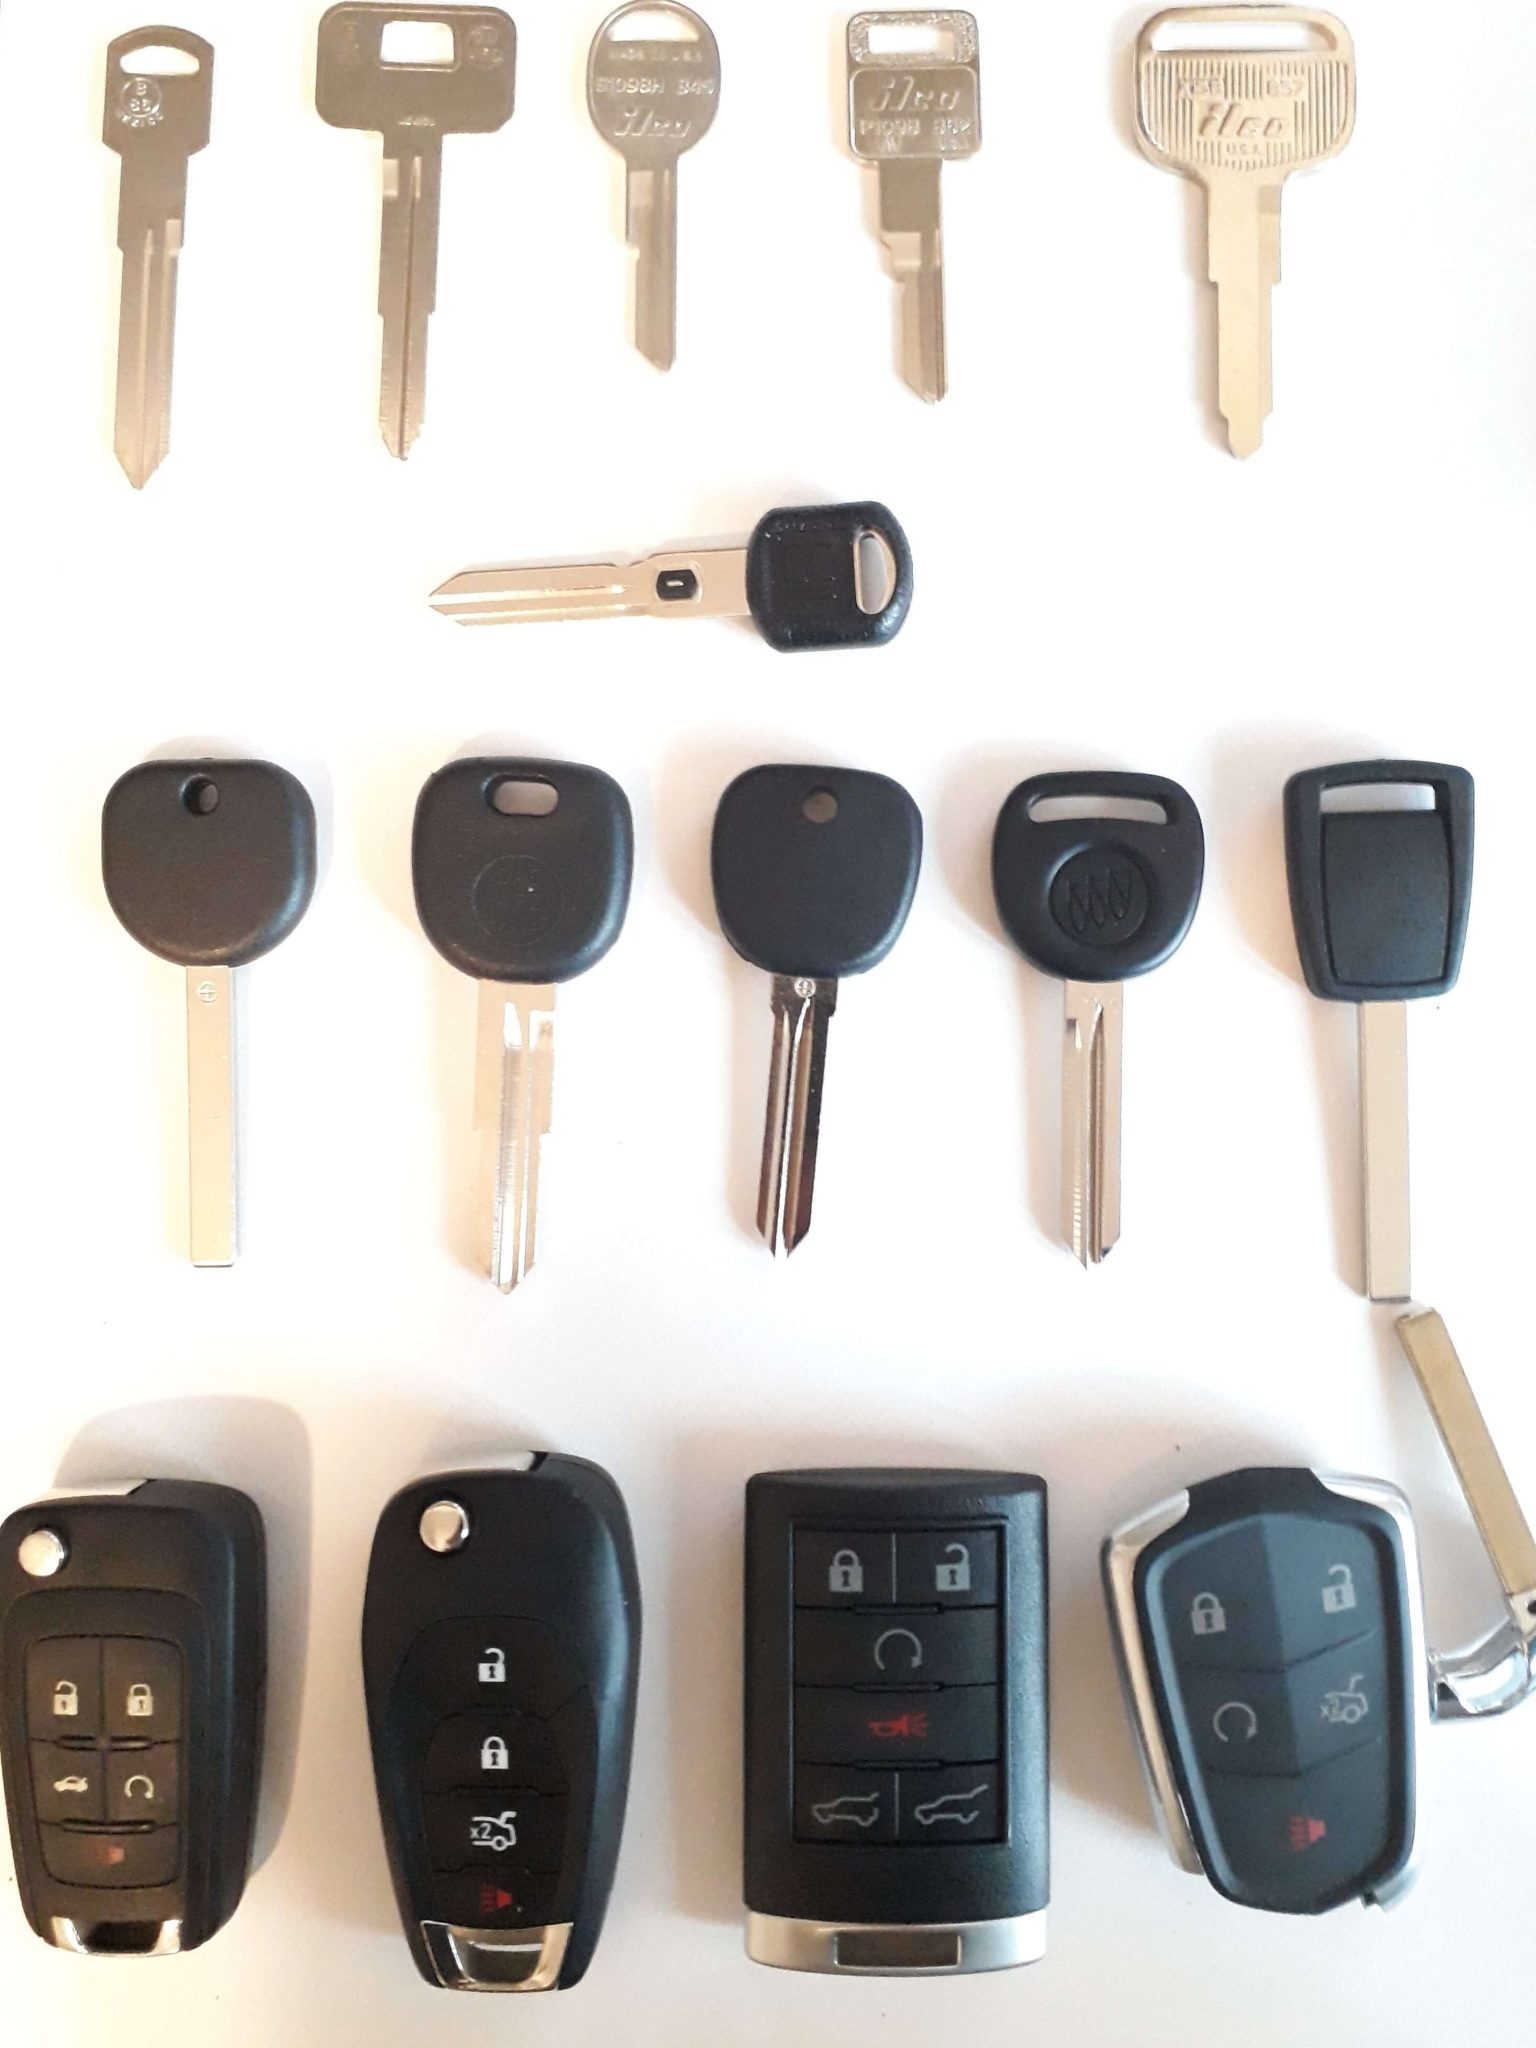 Buick LaCrosse Replacement Keys - What To Do, Options, Cost & More